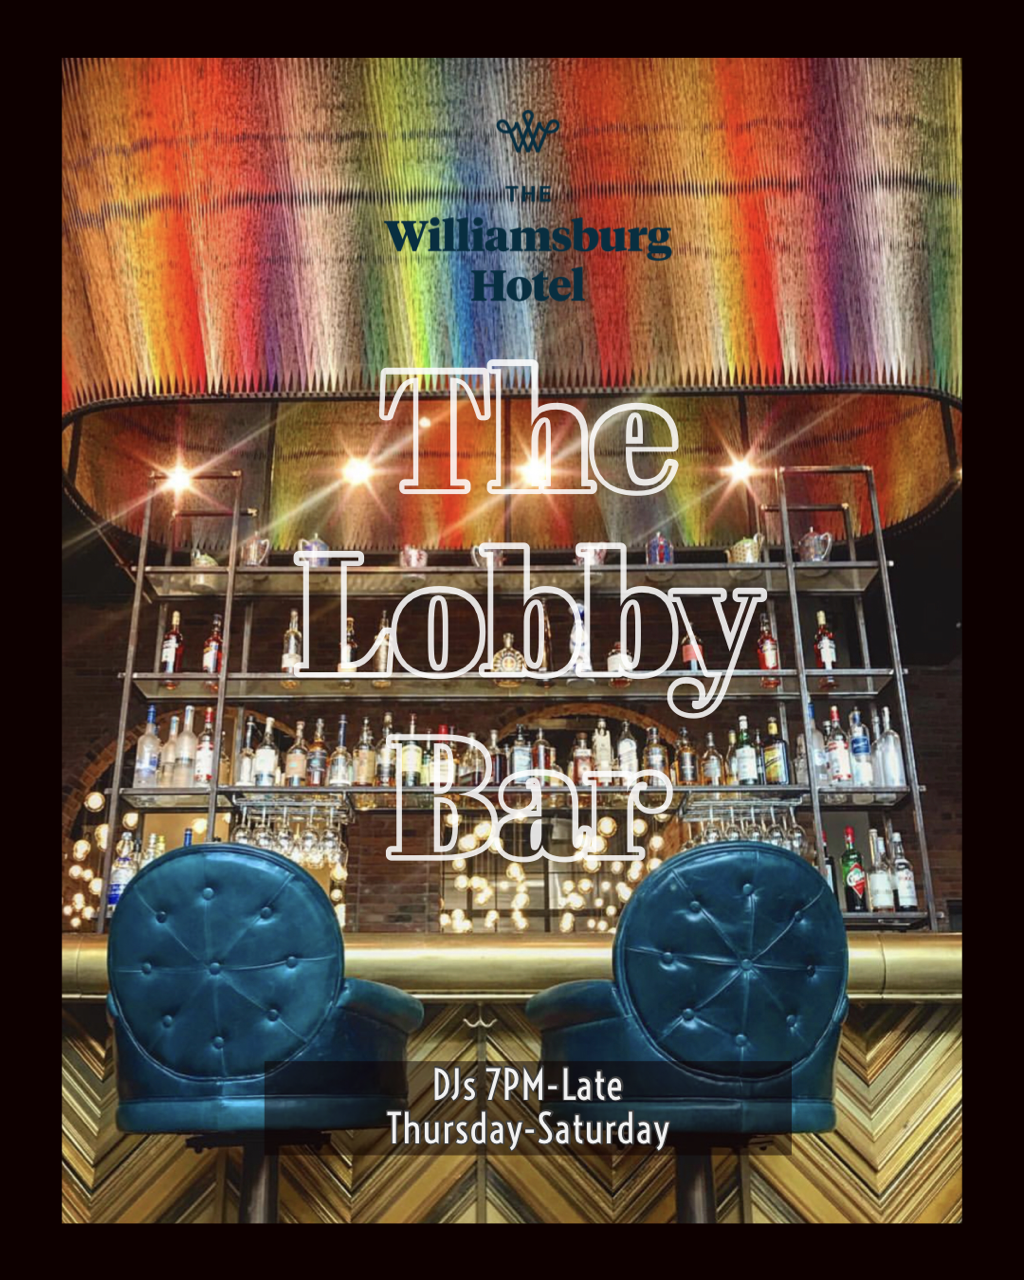 the lobby bar programs